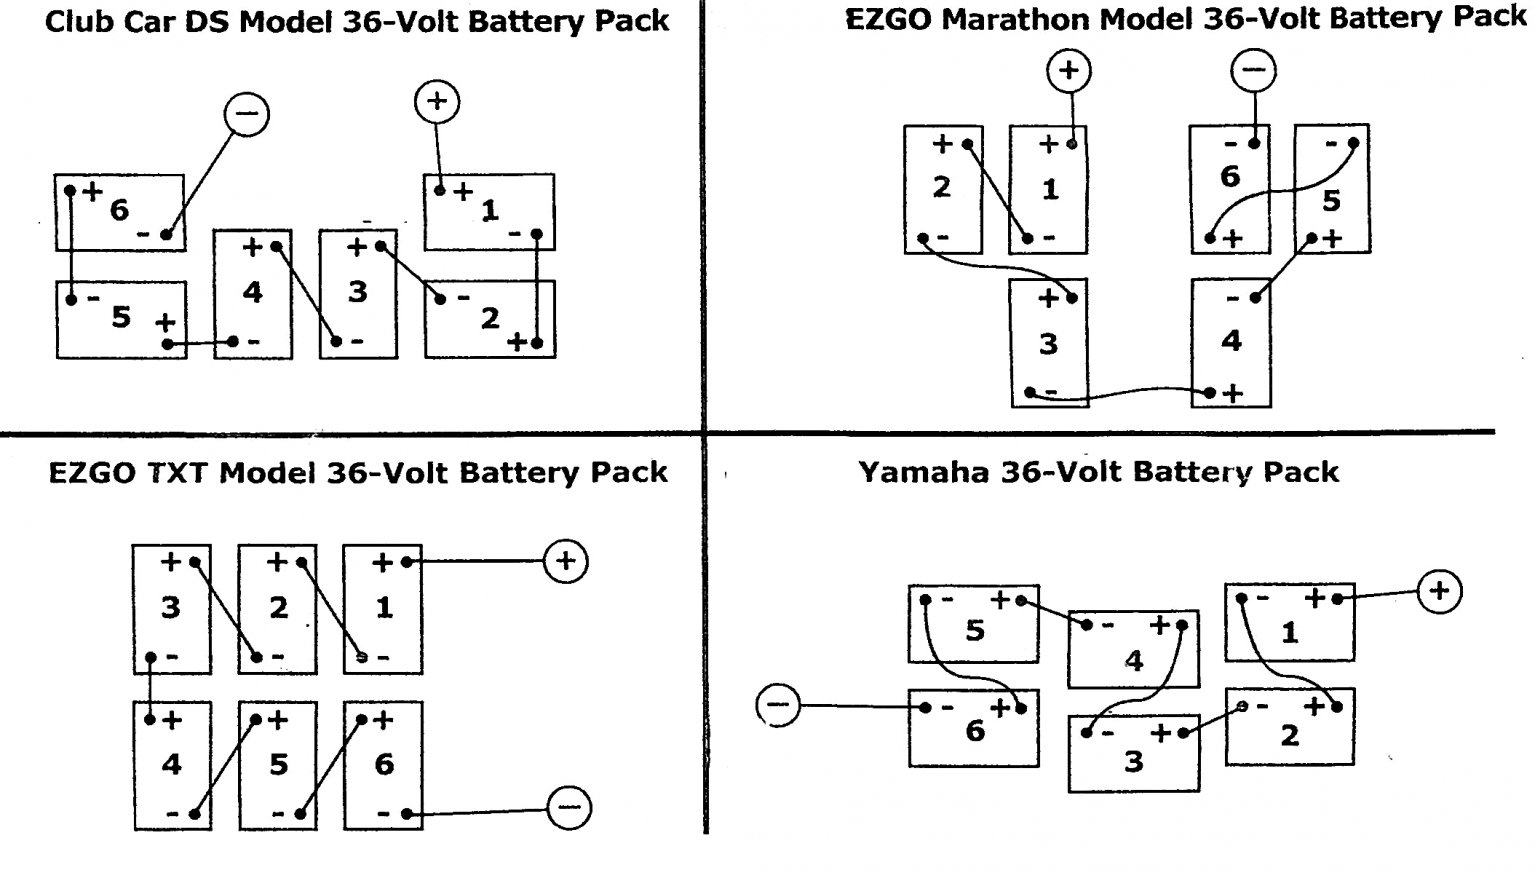 Yamaha Boat Dual Battery Wiring Diagram | Wiring Diagram - Dual Battery Wiring Diagram